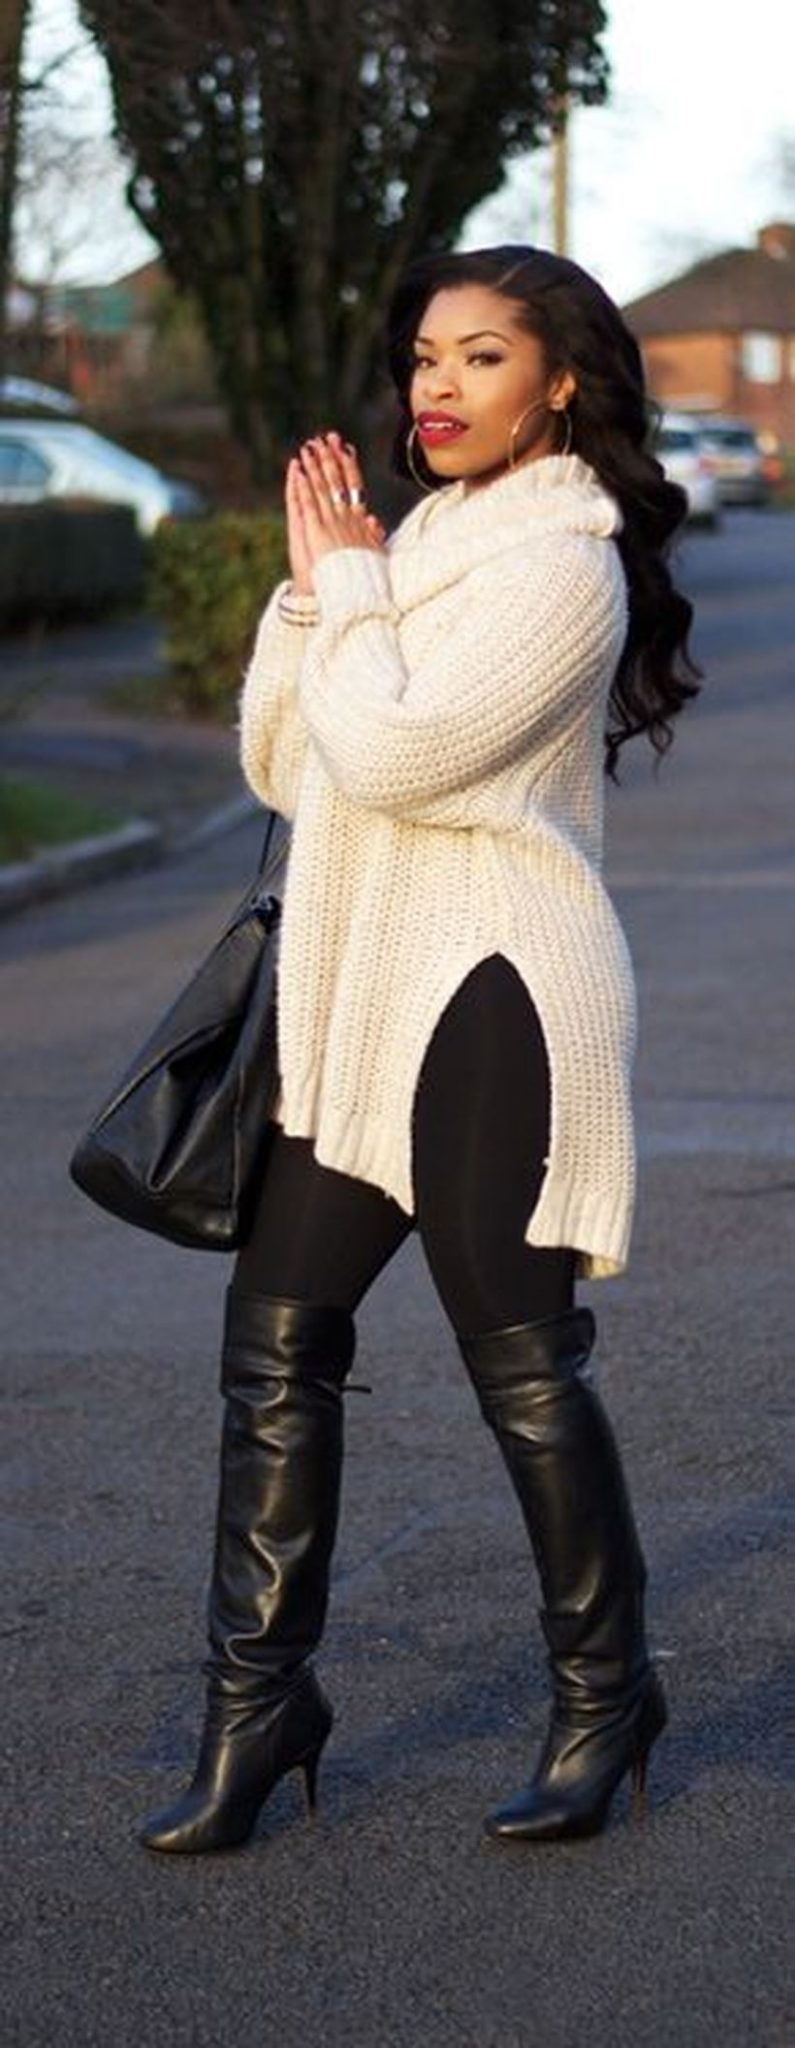 Stylish plus size outfits for winter 2017 60